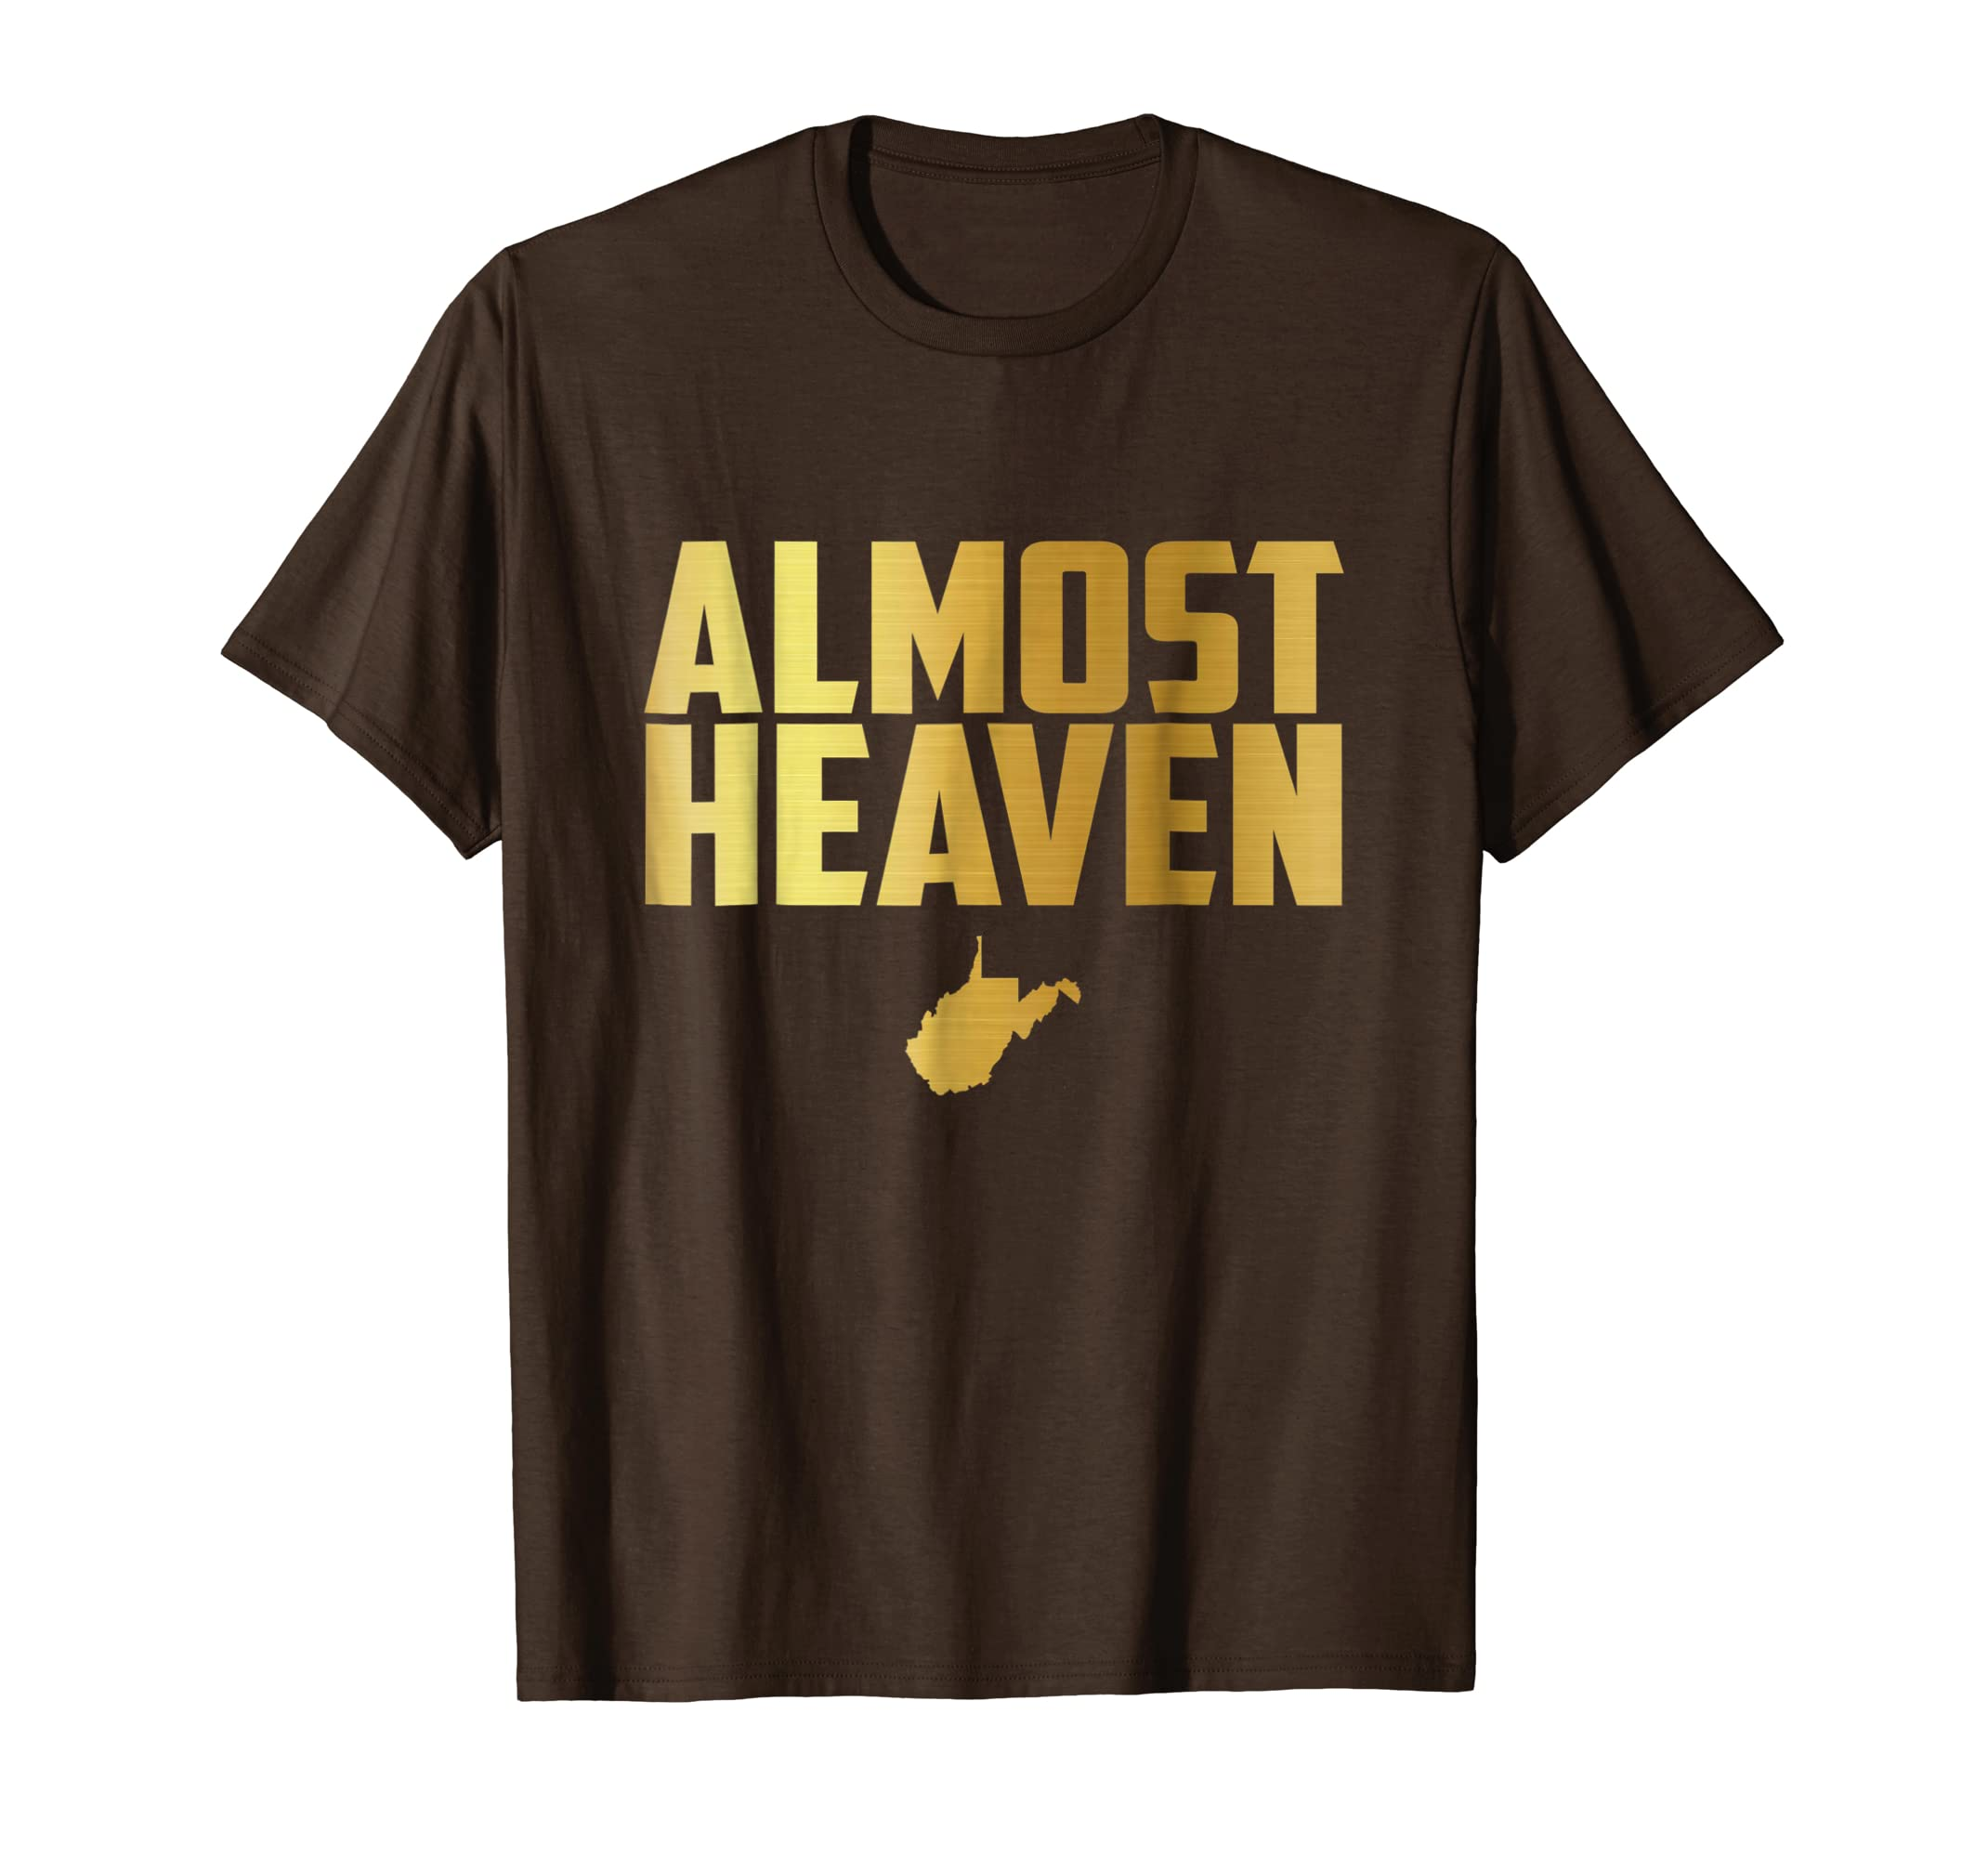 802d3e20862e0 Amazon.com: Almost Heaven West Virginia Tee - Gifts For WVU ...